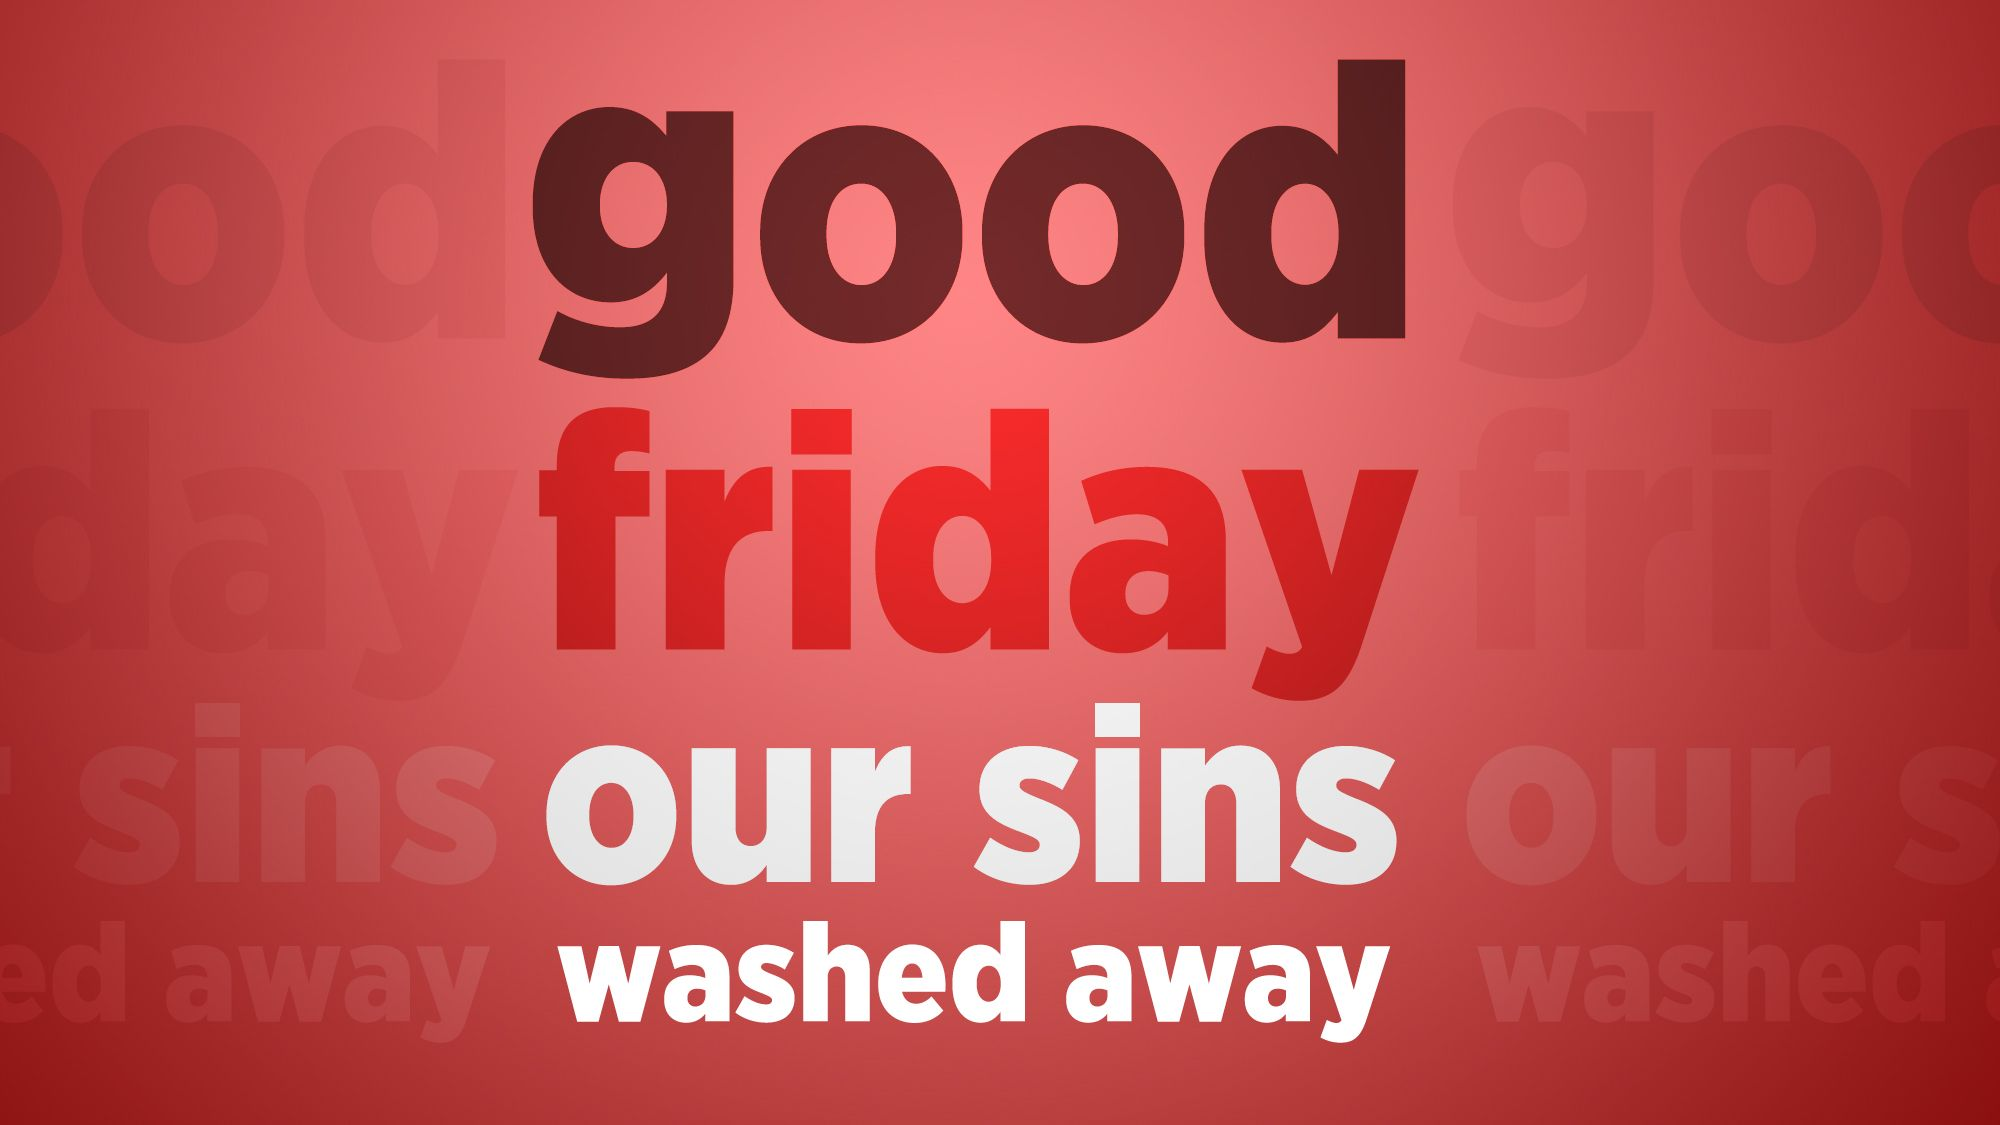 Inspriring Good Friday 2017 SMS, Quotes, Sayings, Status, Photos HD , WhatsApp Messages In English